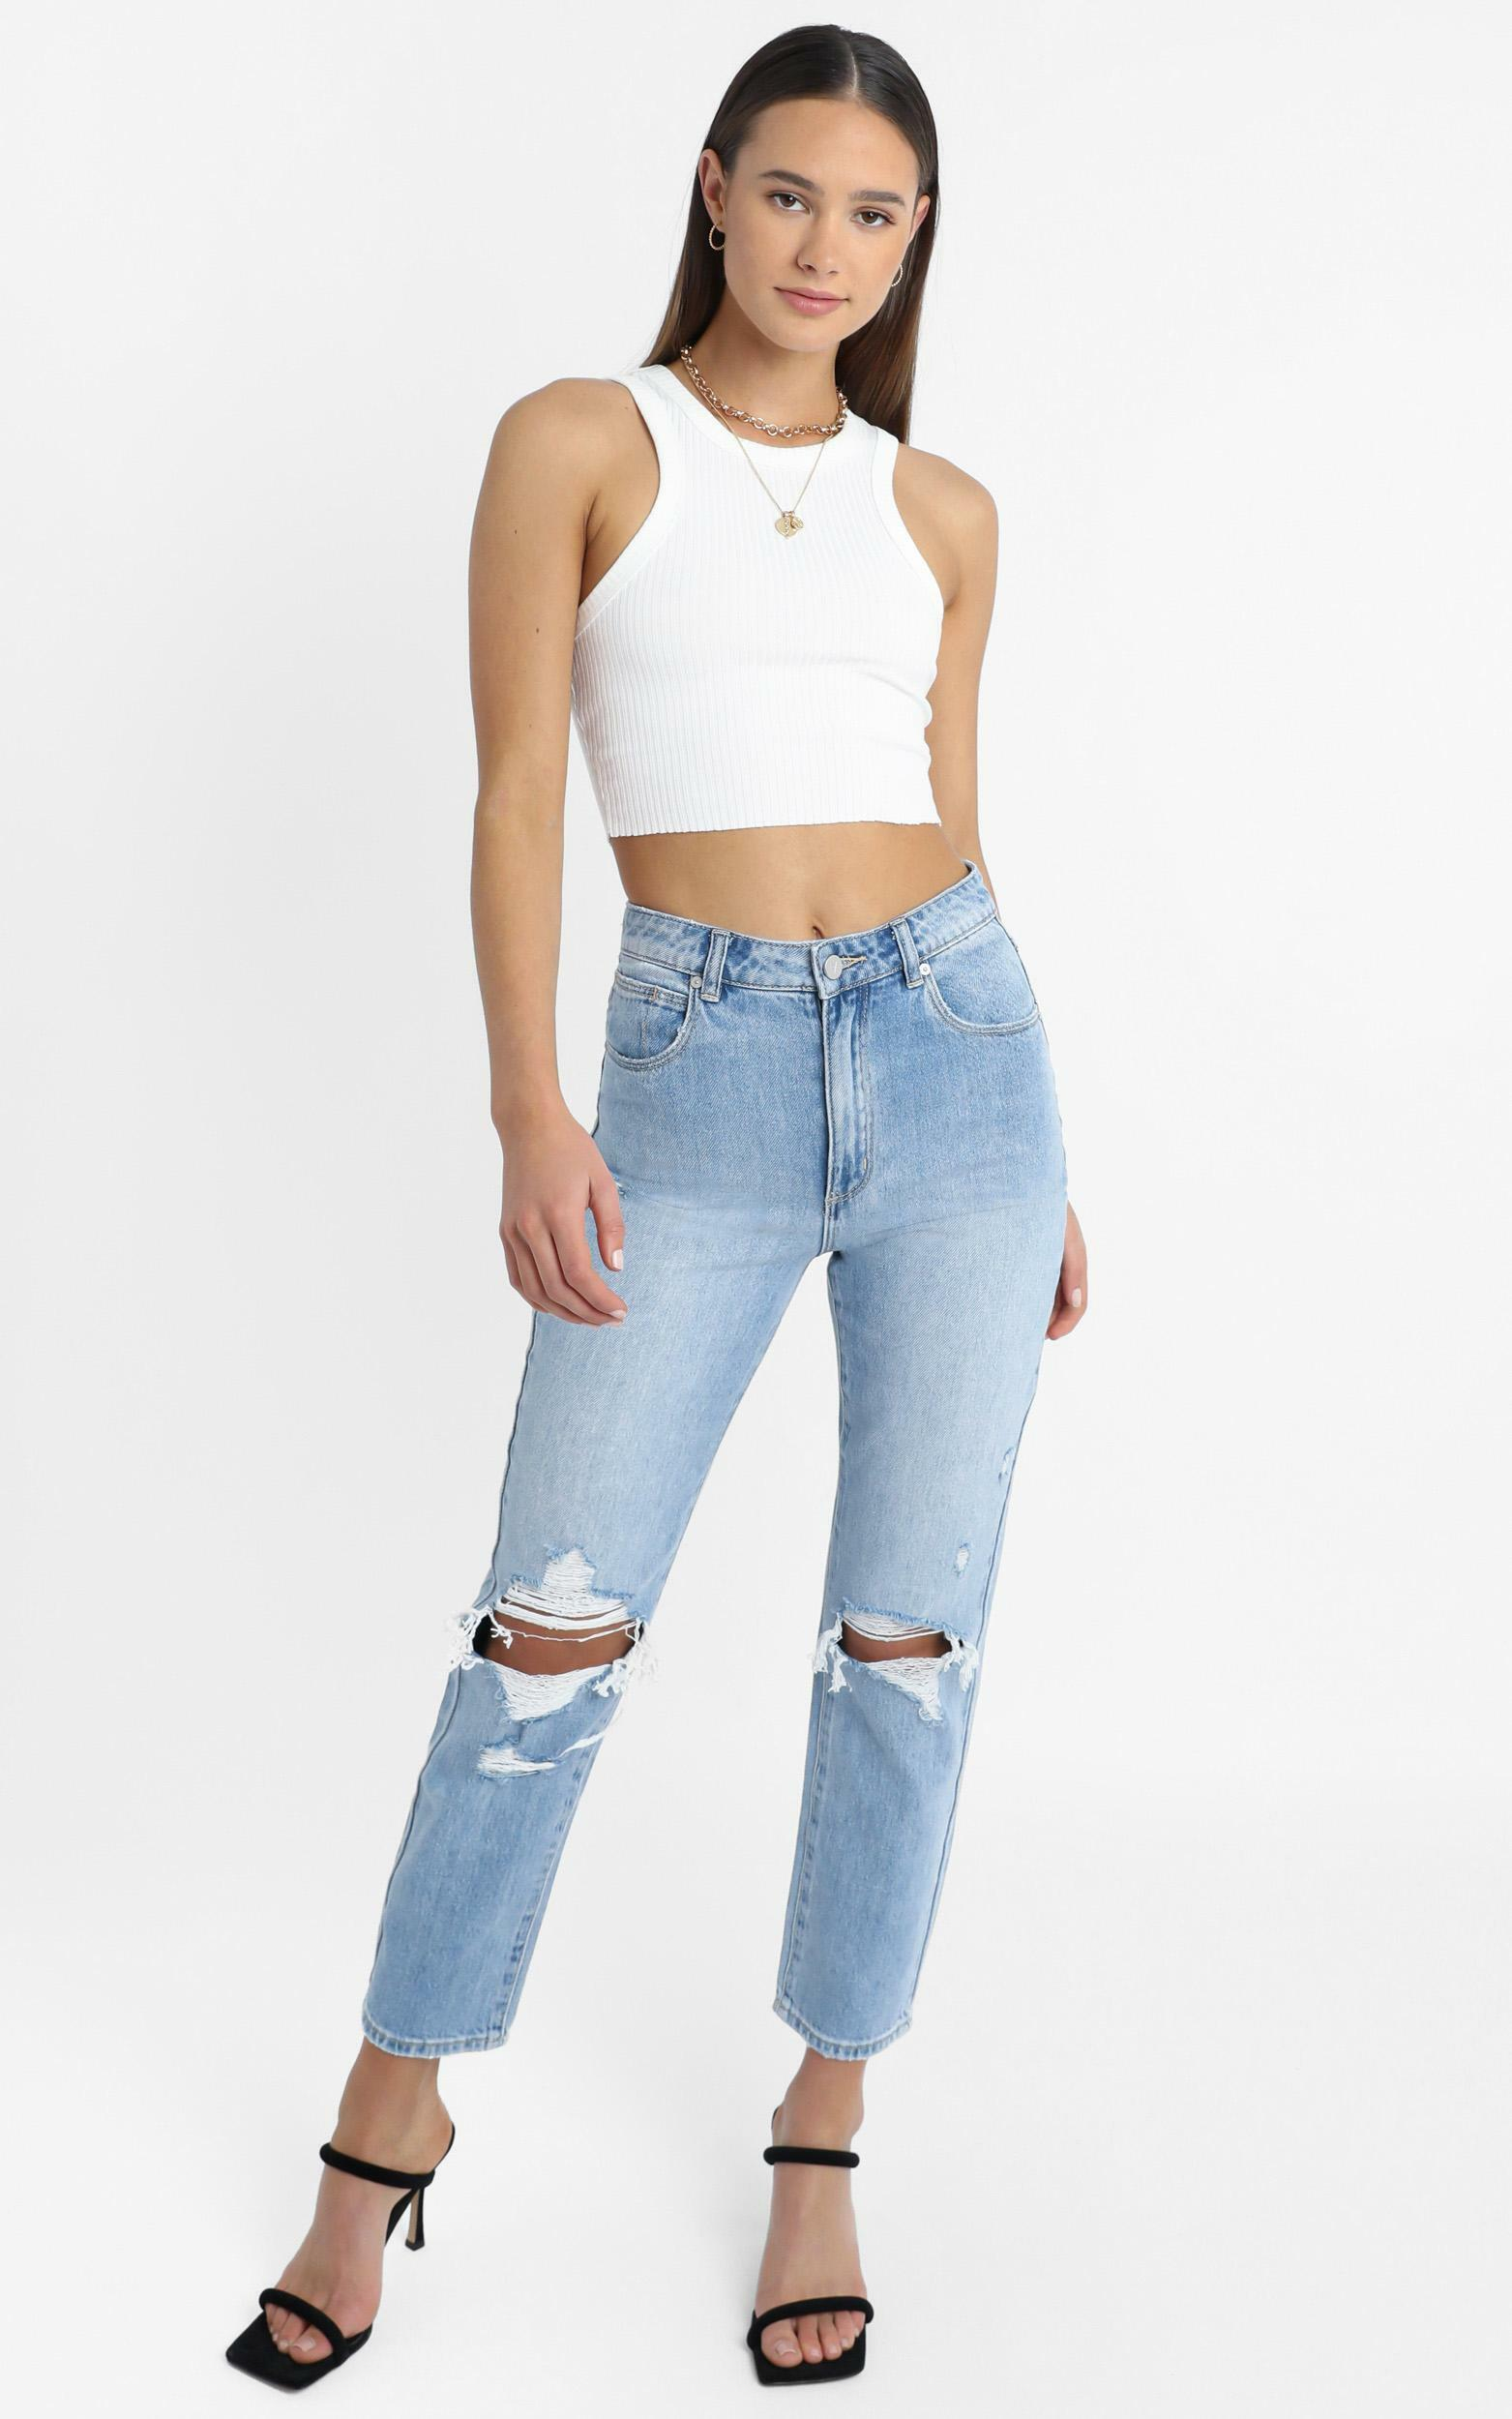 Abrand - A 94 High Slim Jean in Wildlife - 14 (XL), Blue, hi-res image number null